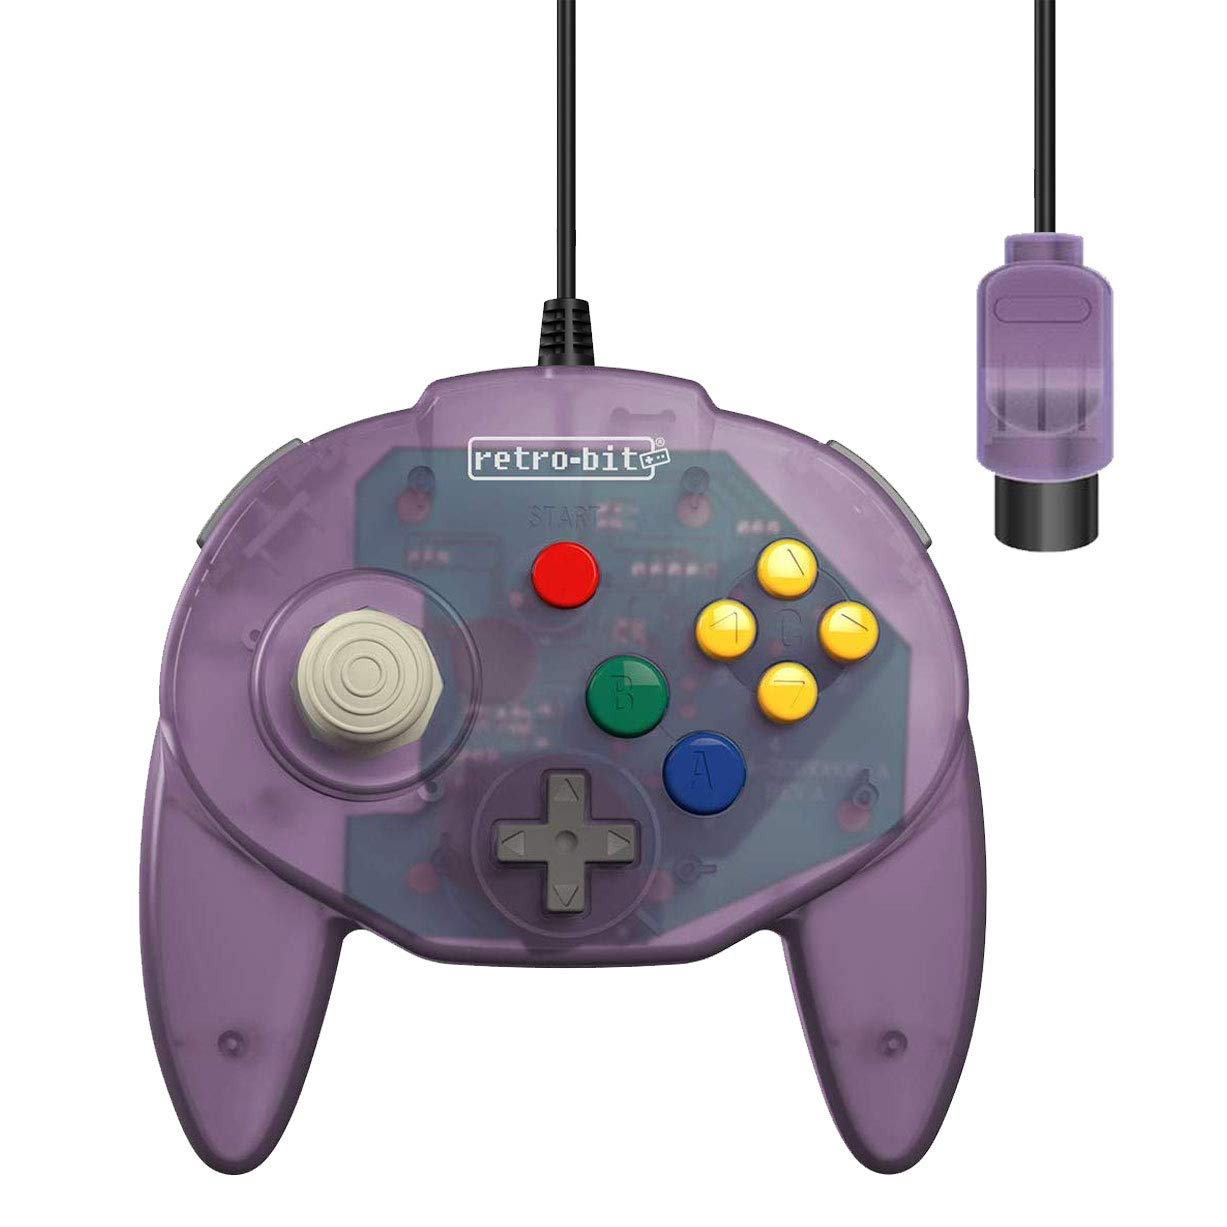 Retro-Bit Tribute 64 Wired N64 Controller for Nintendo 64 - Original Port - (Atomic Purple)